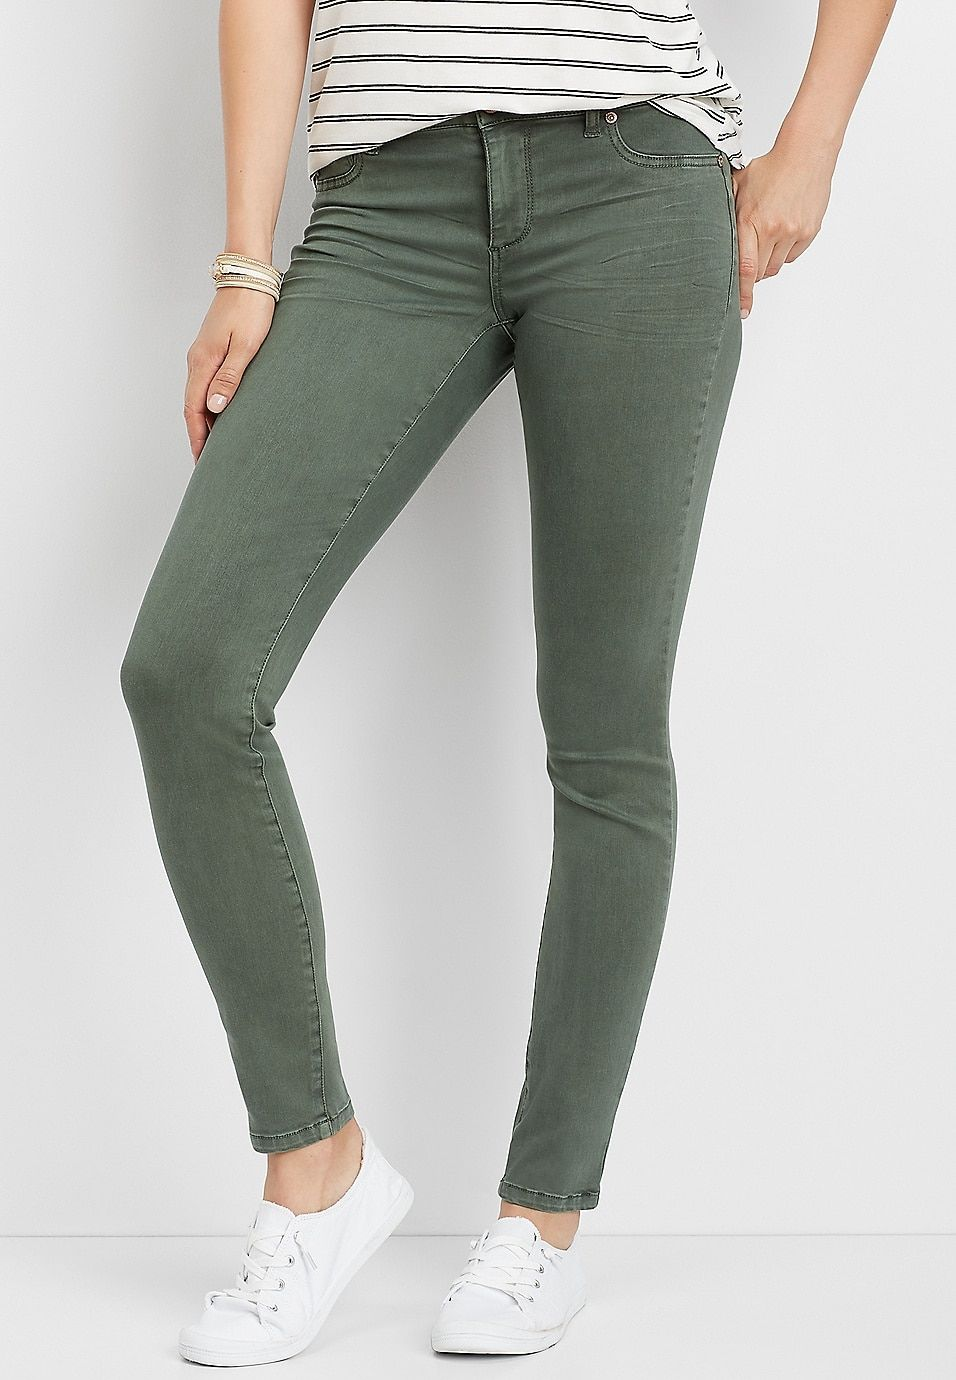 Olive Color Jegging Made With Repreve In 2020 Olive Pants Outfit Colored Jeans Outfits Olive Pants